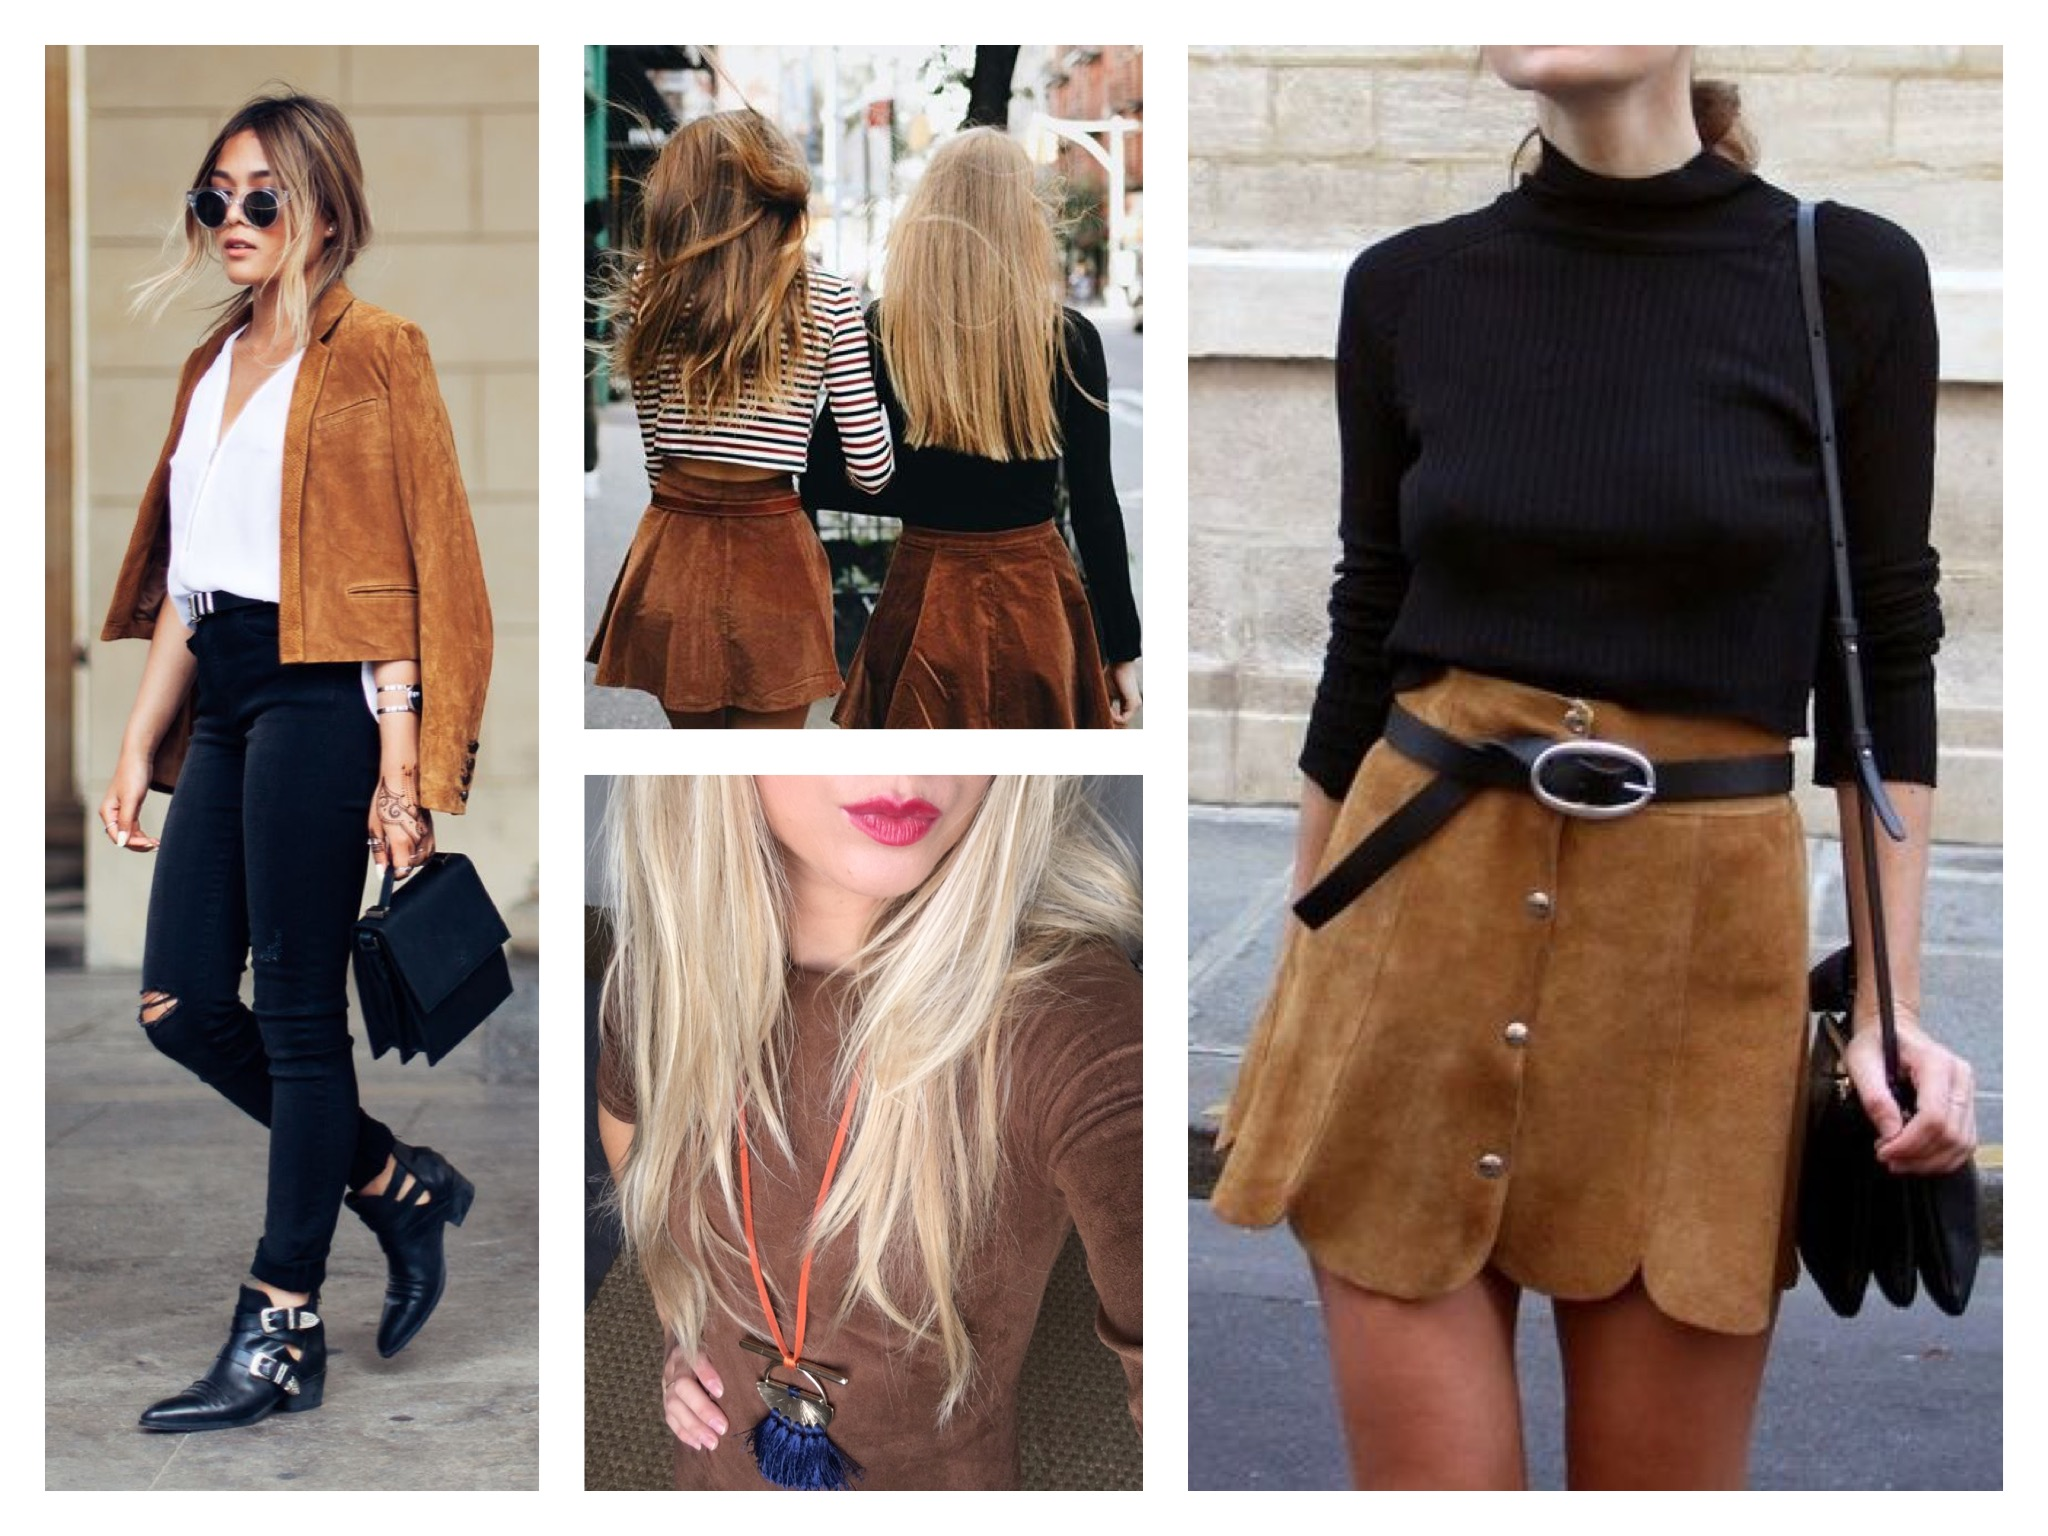 Suede skirts and dress for fall